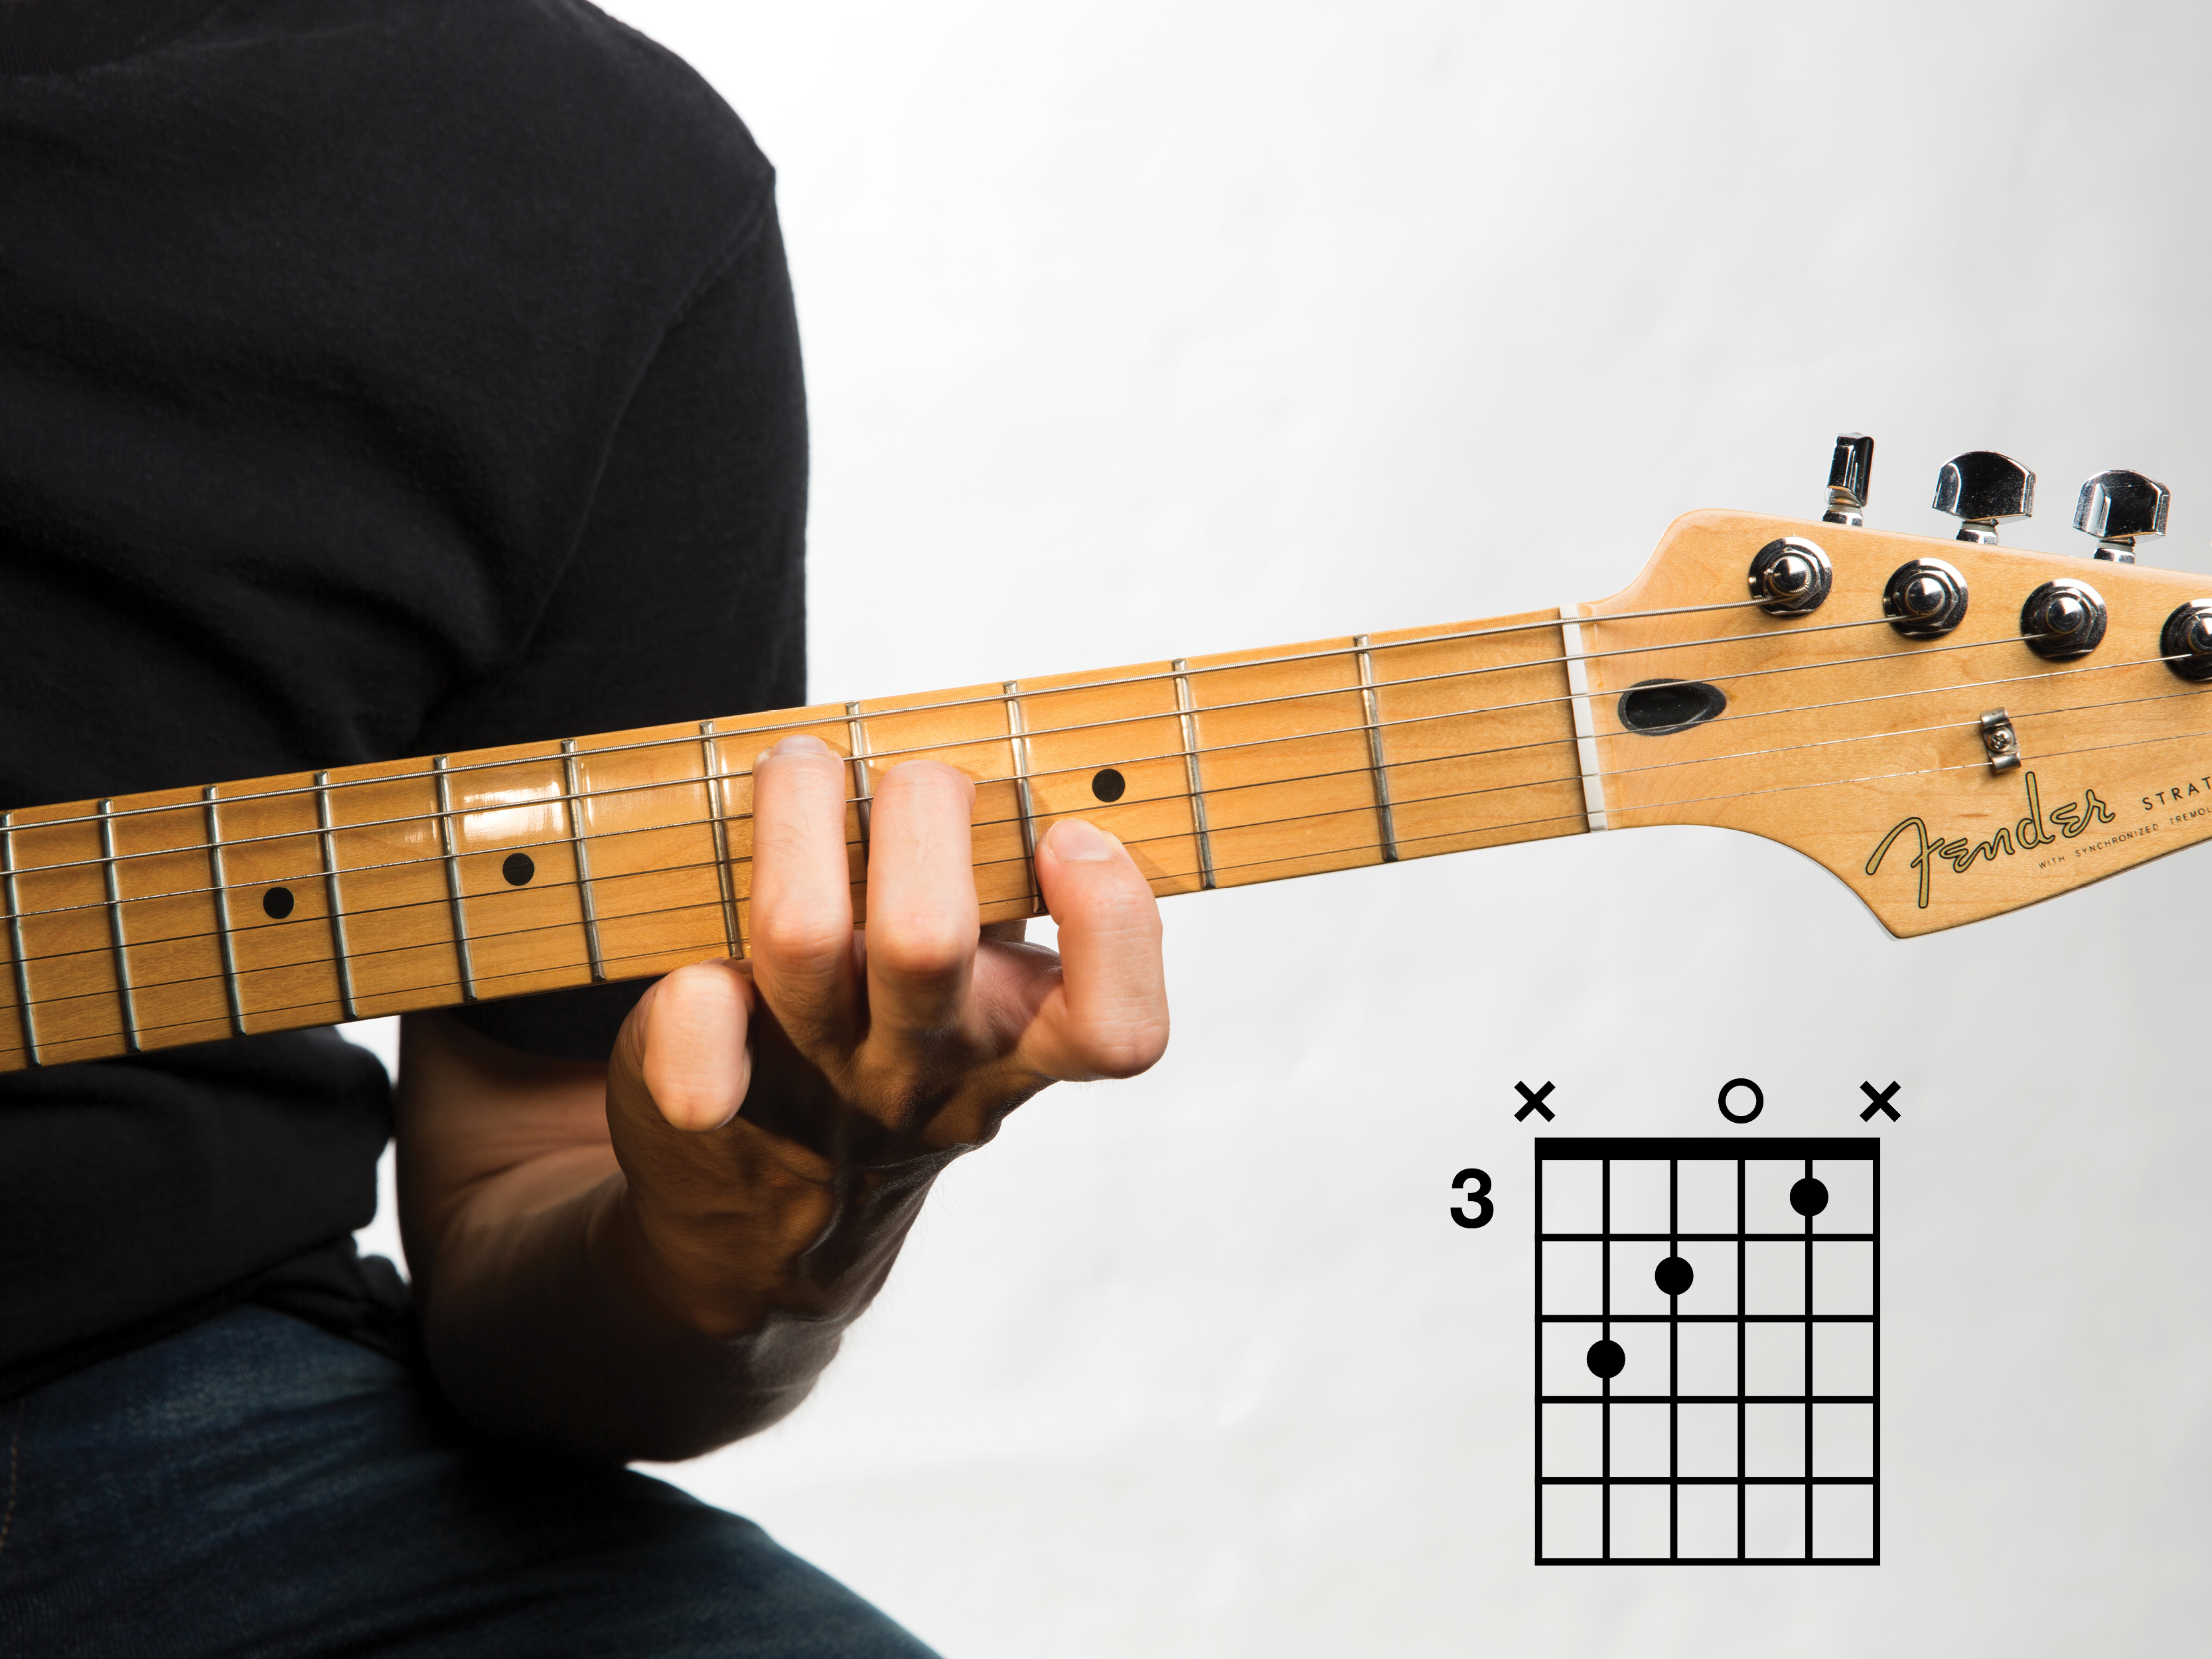 Modified D major chord